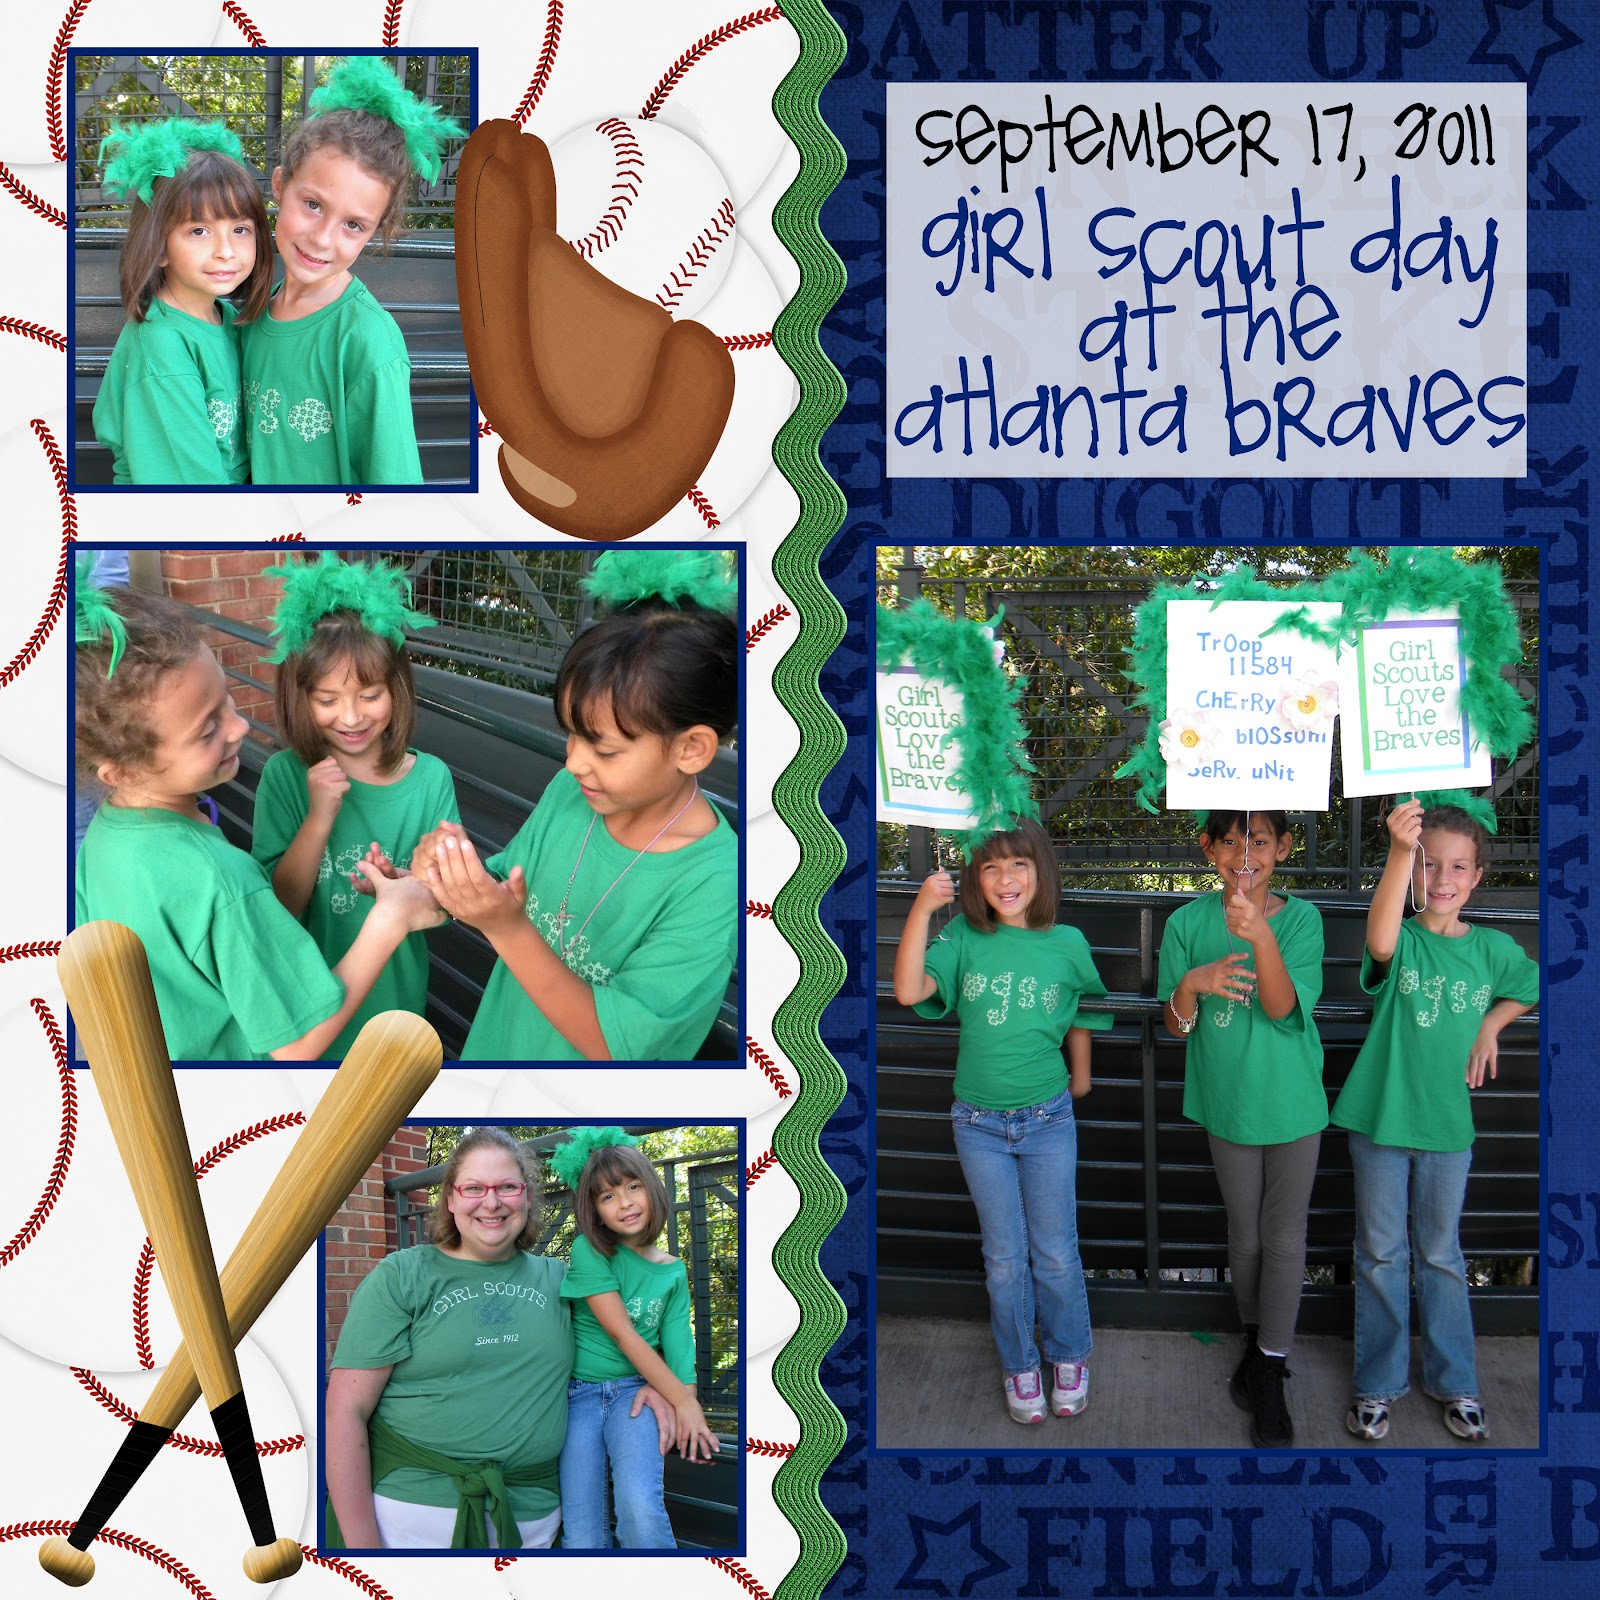 September 2011: Girl Scout Troop 11584: September 2011